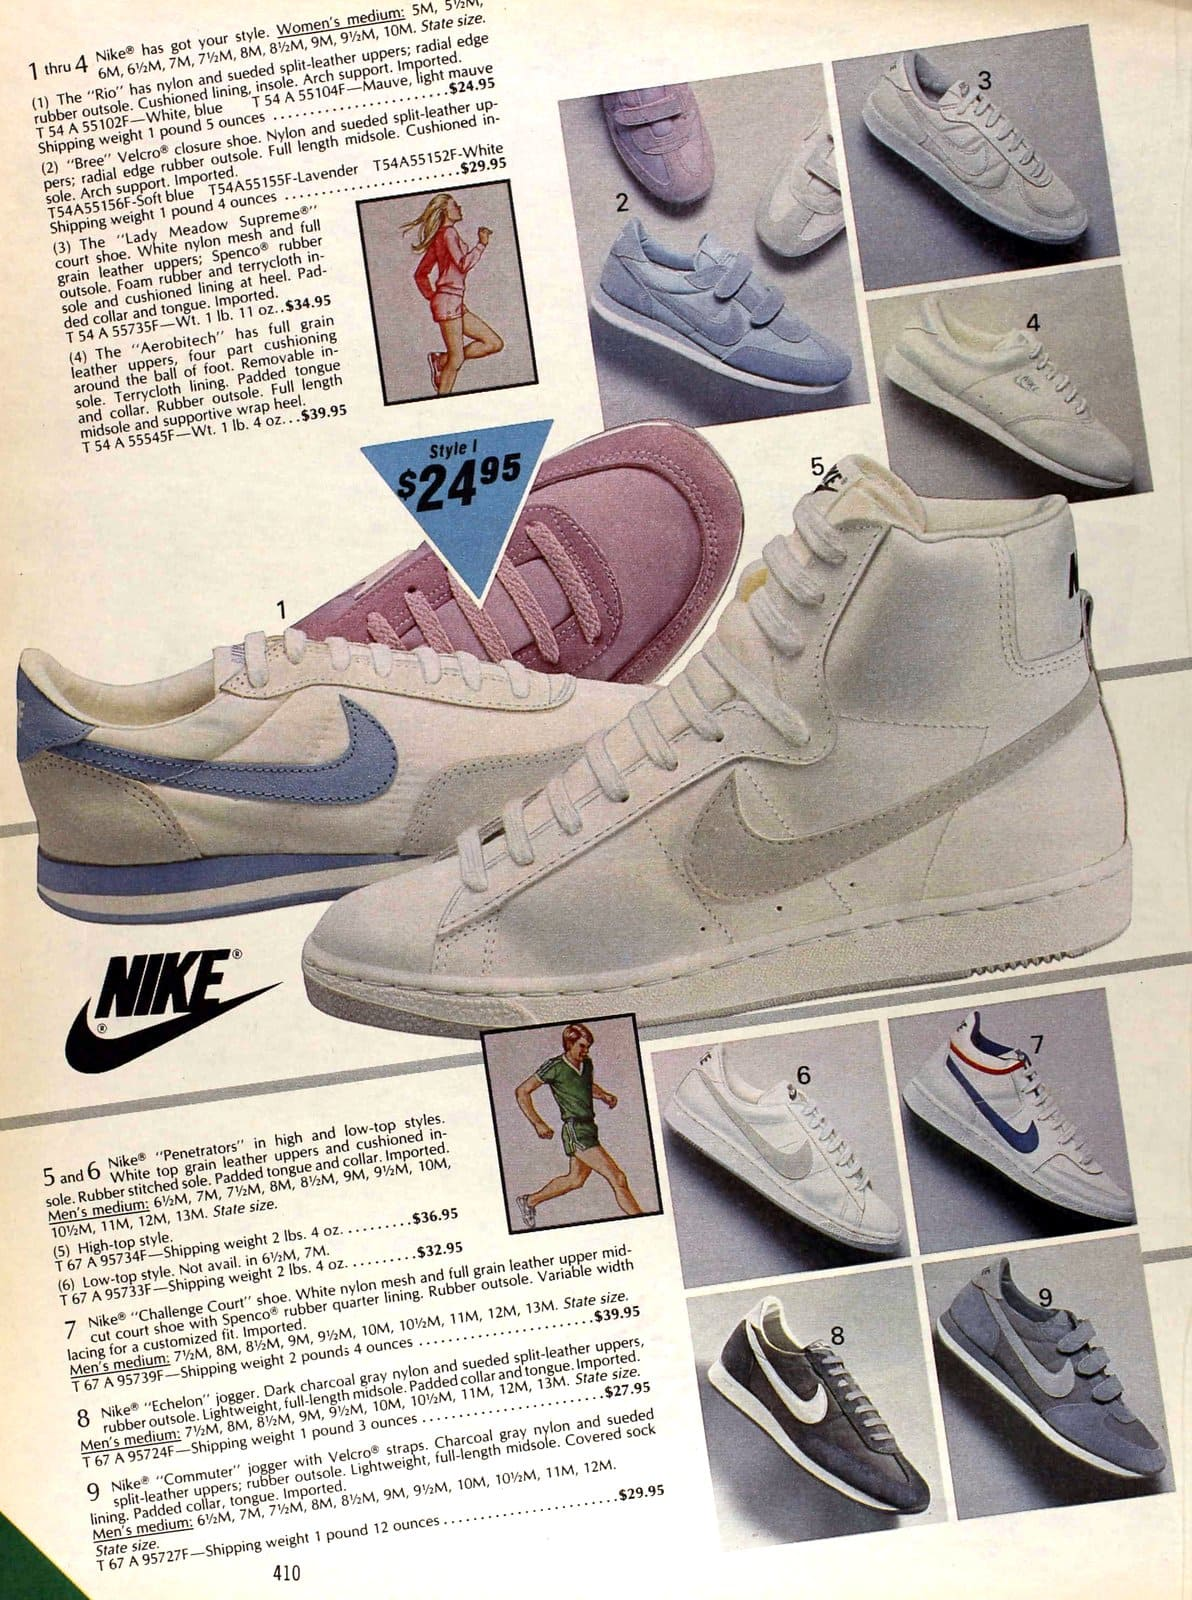 Old Nike shoes available in 1983